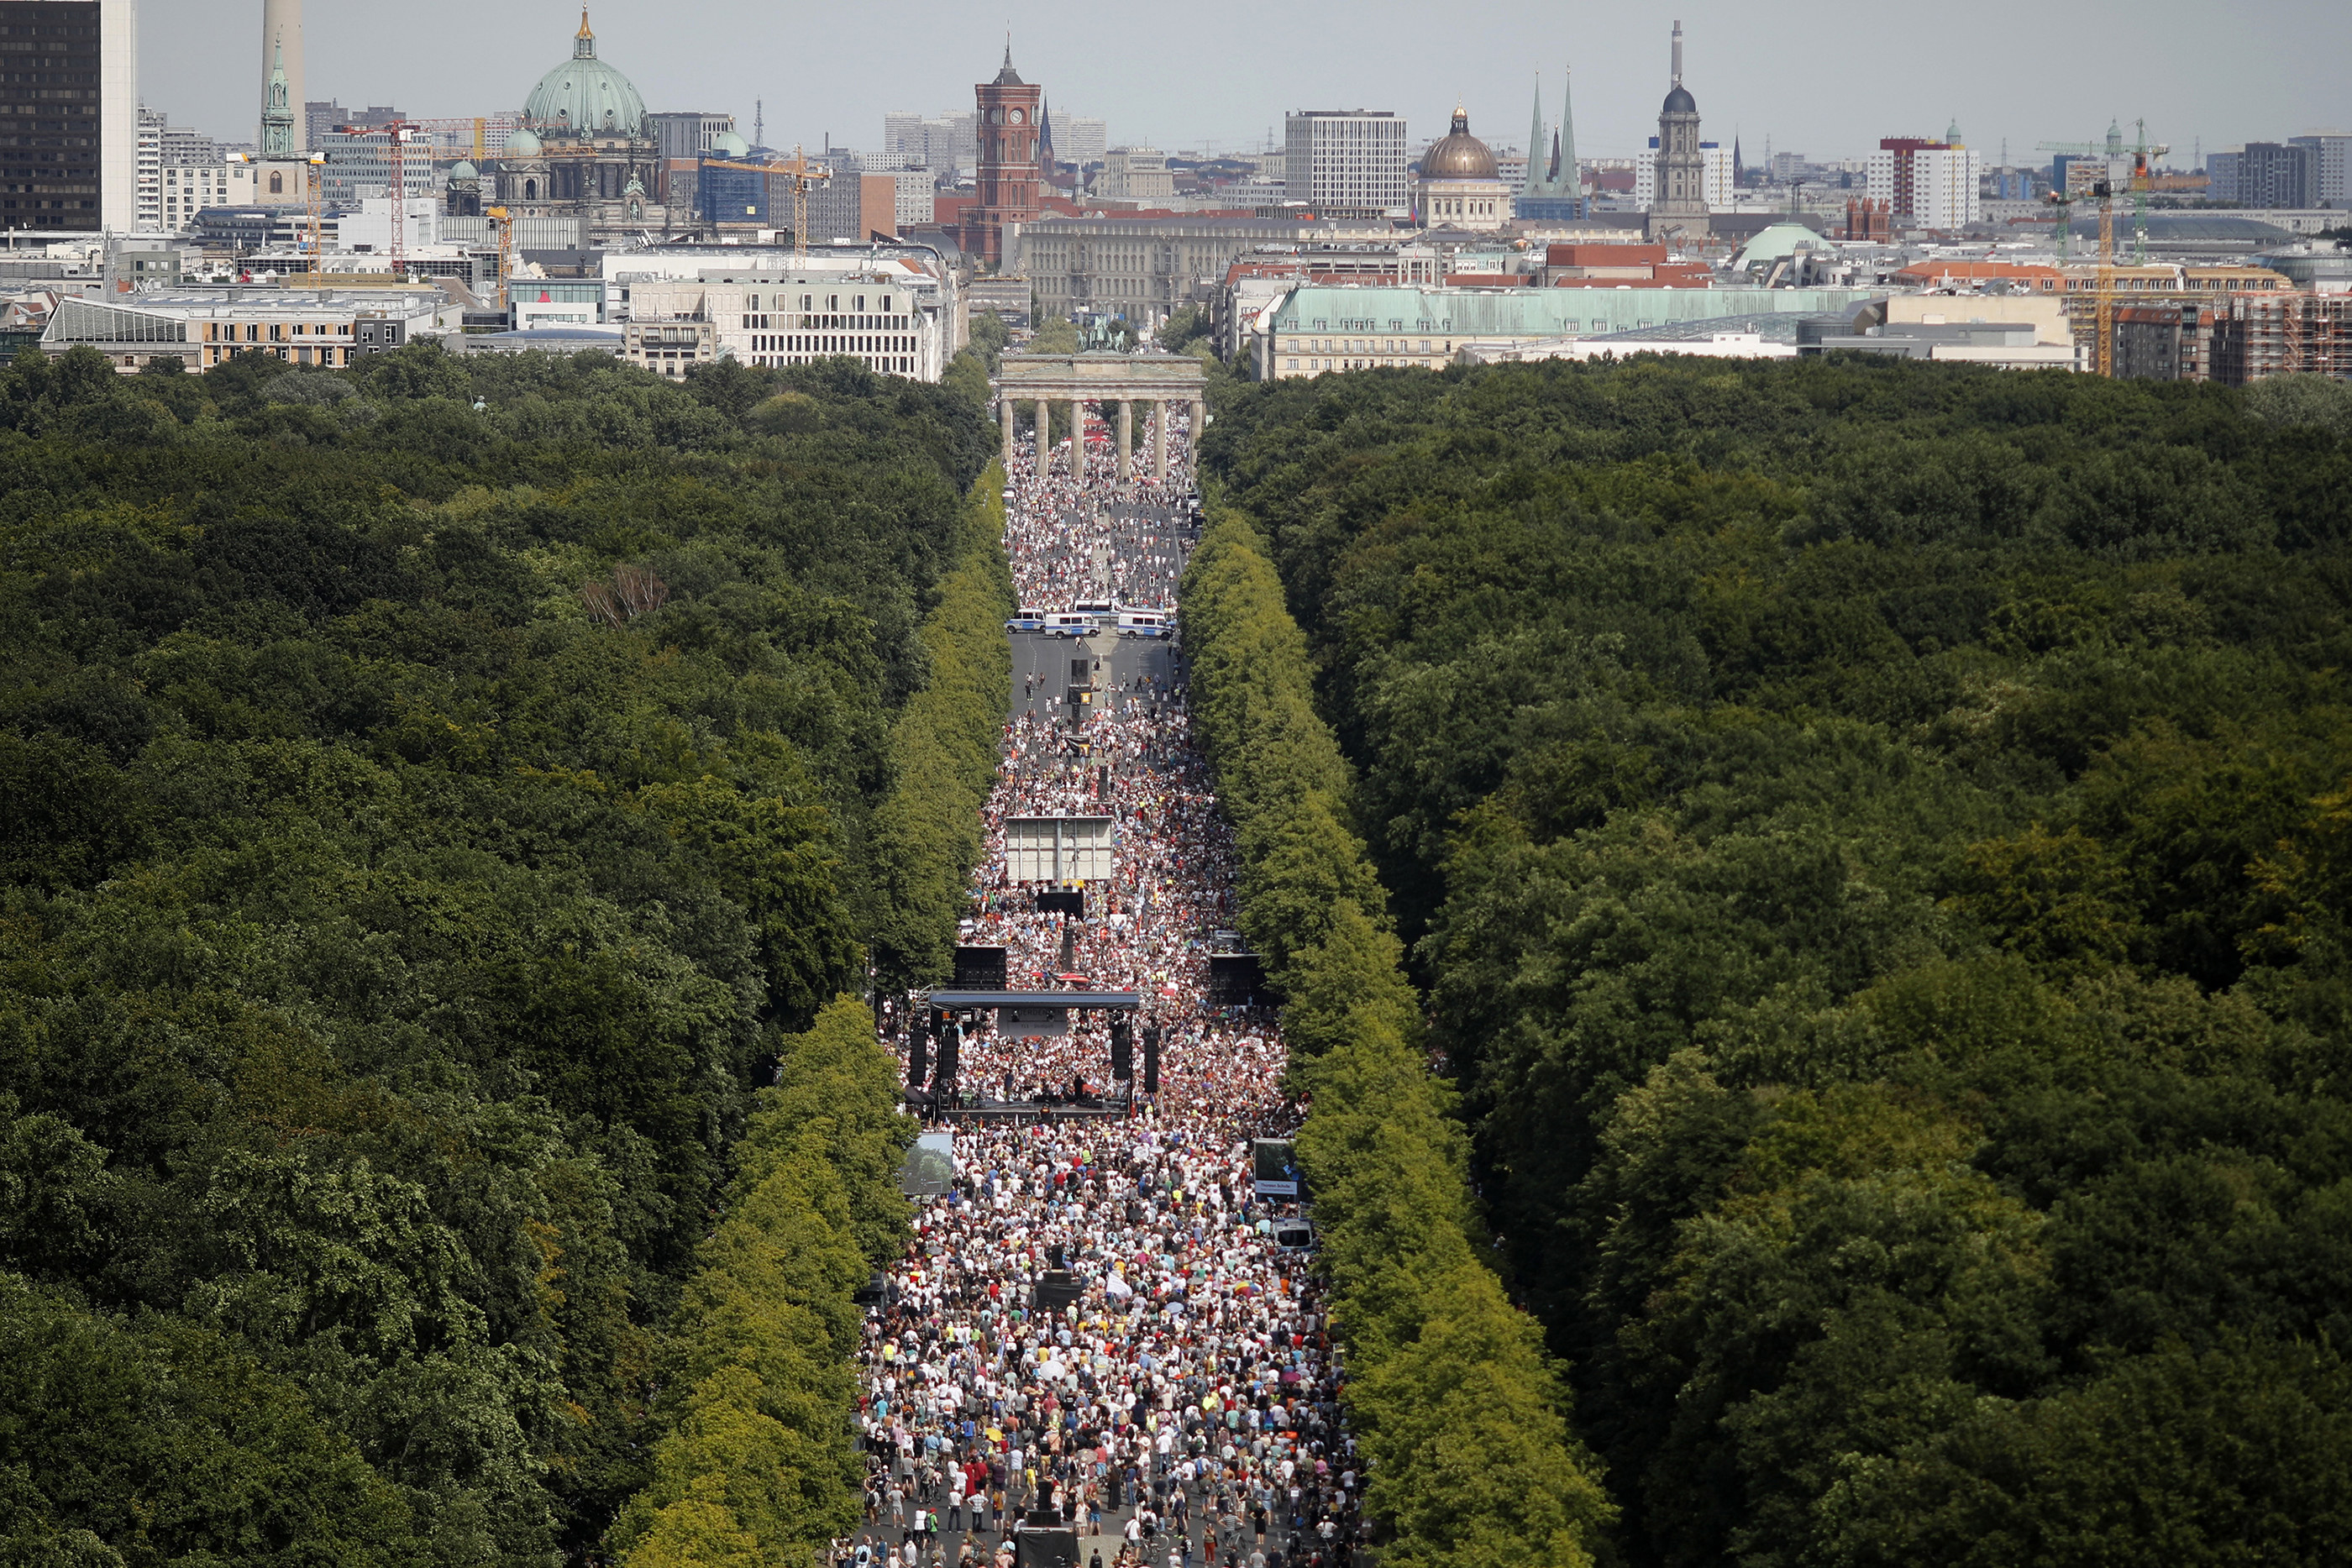 An aerial shot of thousands of people walking down a boulevard surrounded by trees and toward the skyline of Berlin